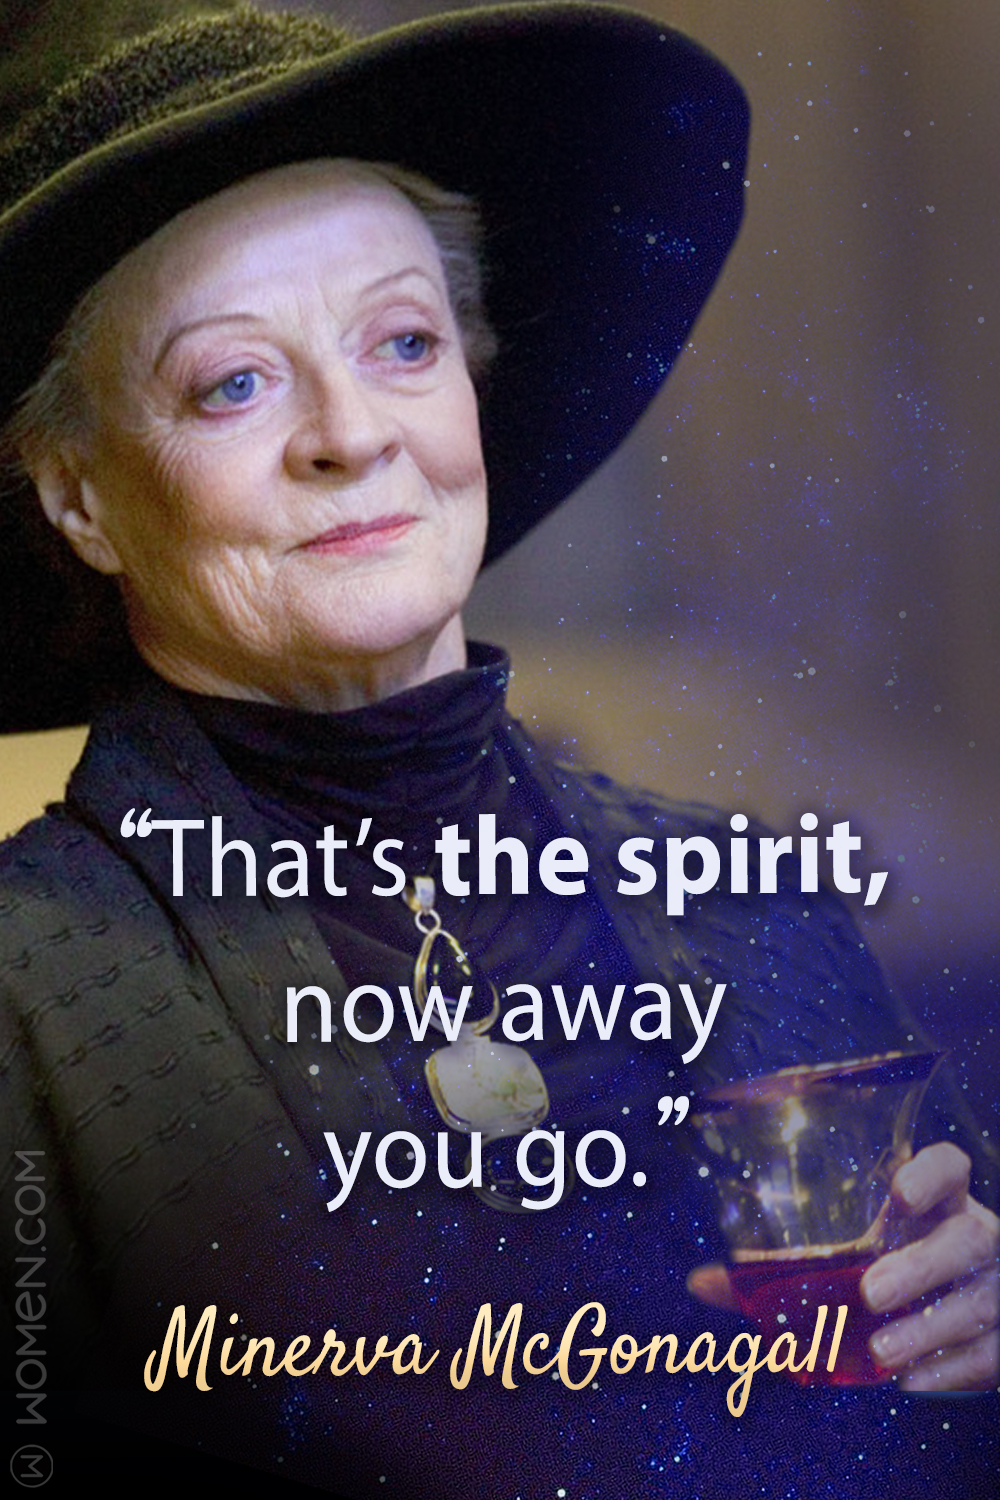 Top 10 Most Memorable Minerva McGonagall Quotes, Minerva quotes